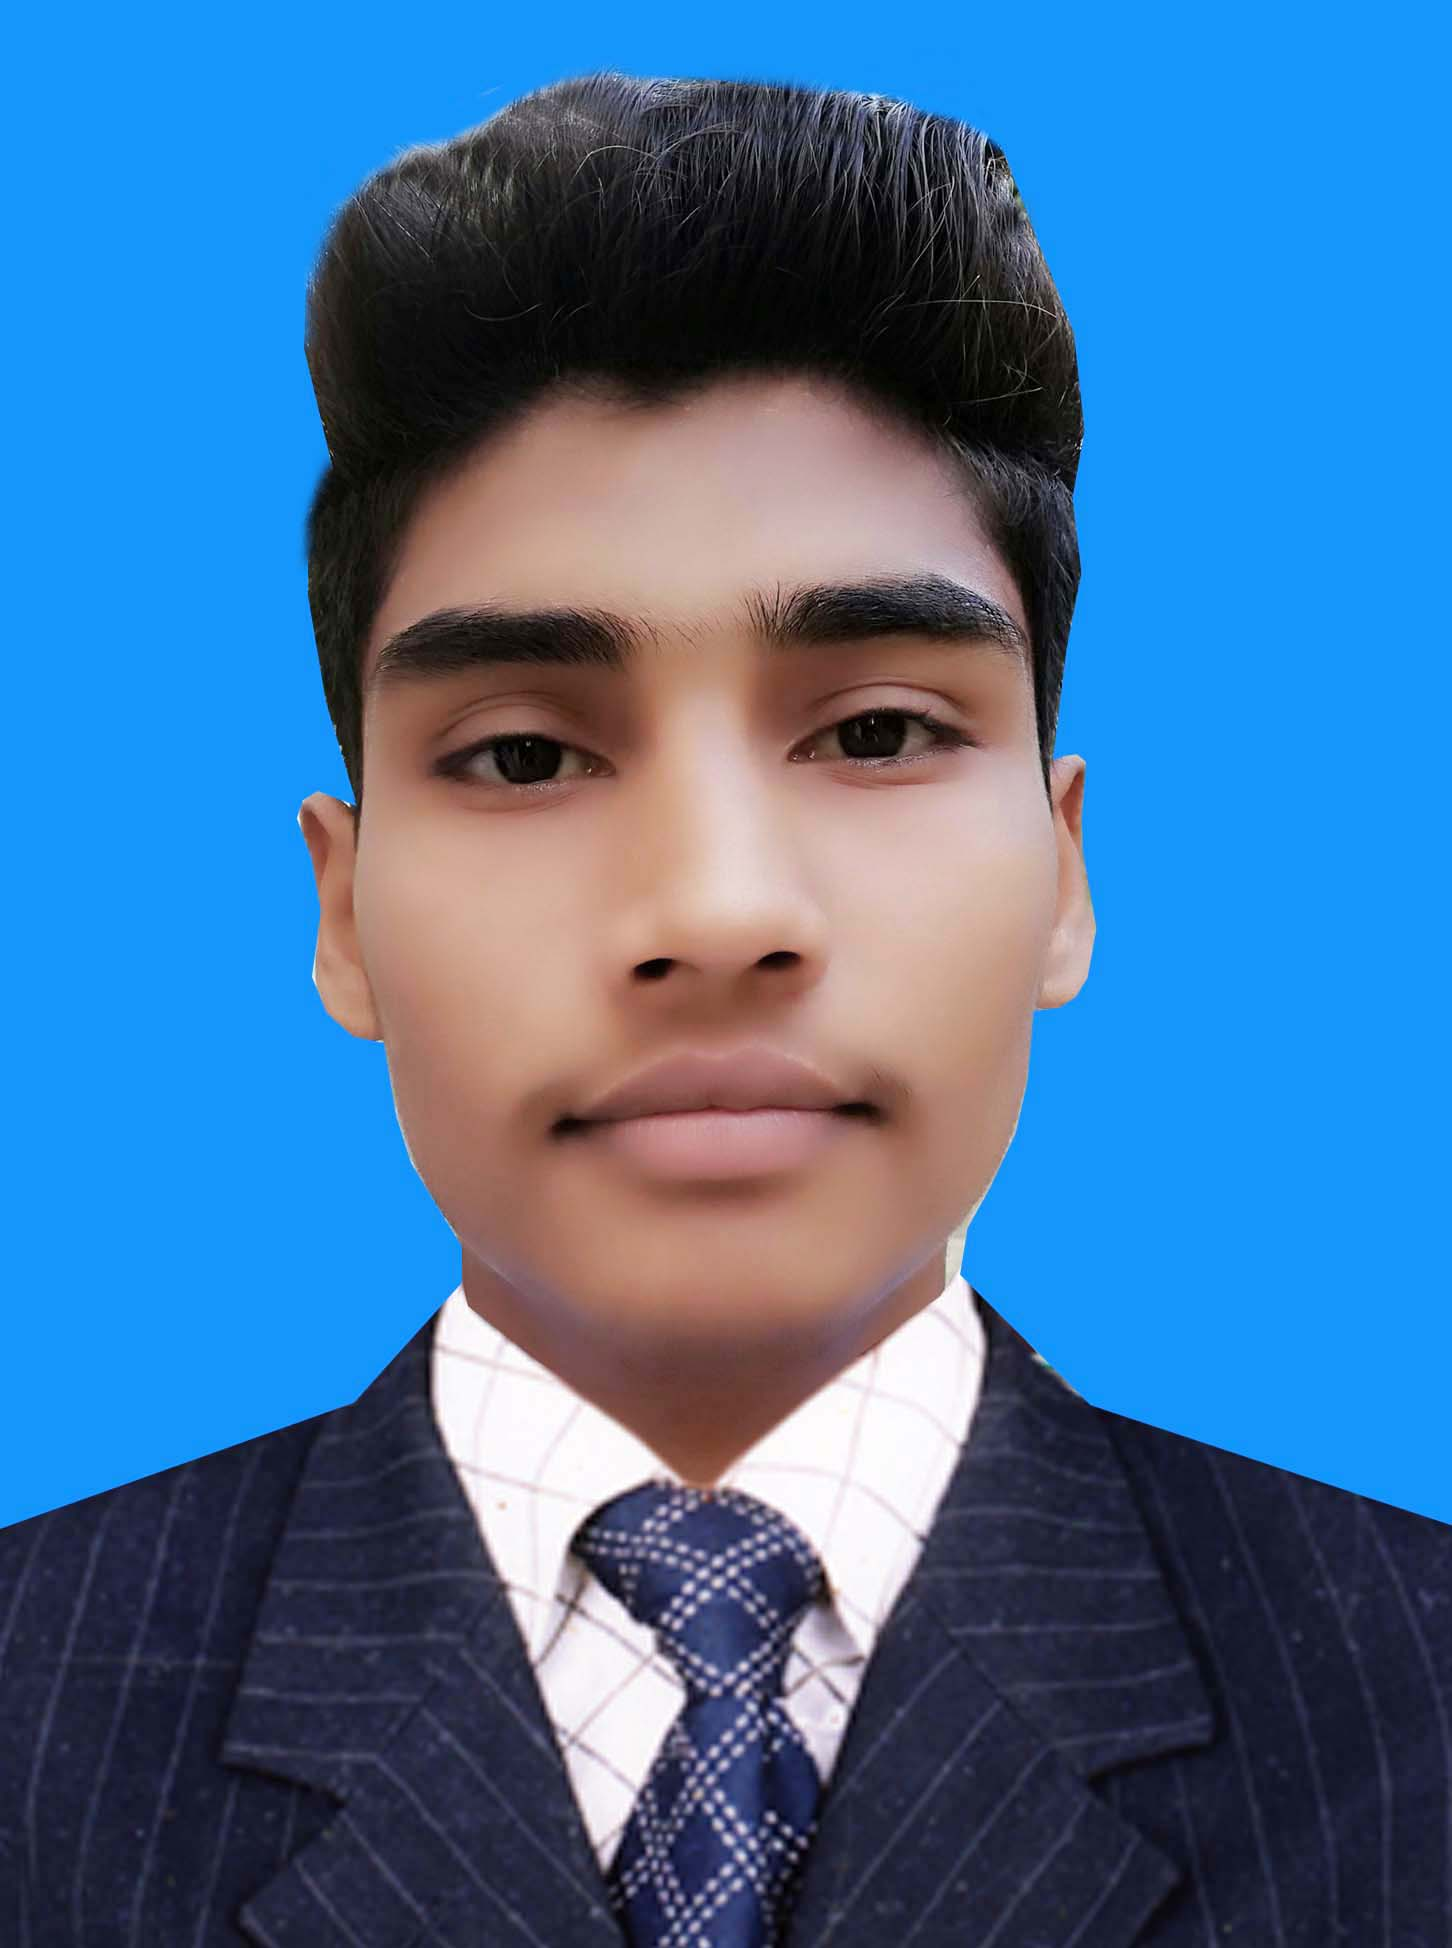 Faraz Ali Arts & Crafts, Graphic Design, Photoshop, T-Shirts, Word, Employee Training, Article Submission, Data Entry, Excel, Virtual Assistant